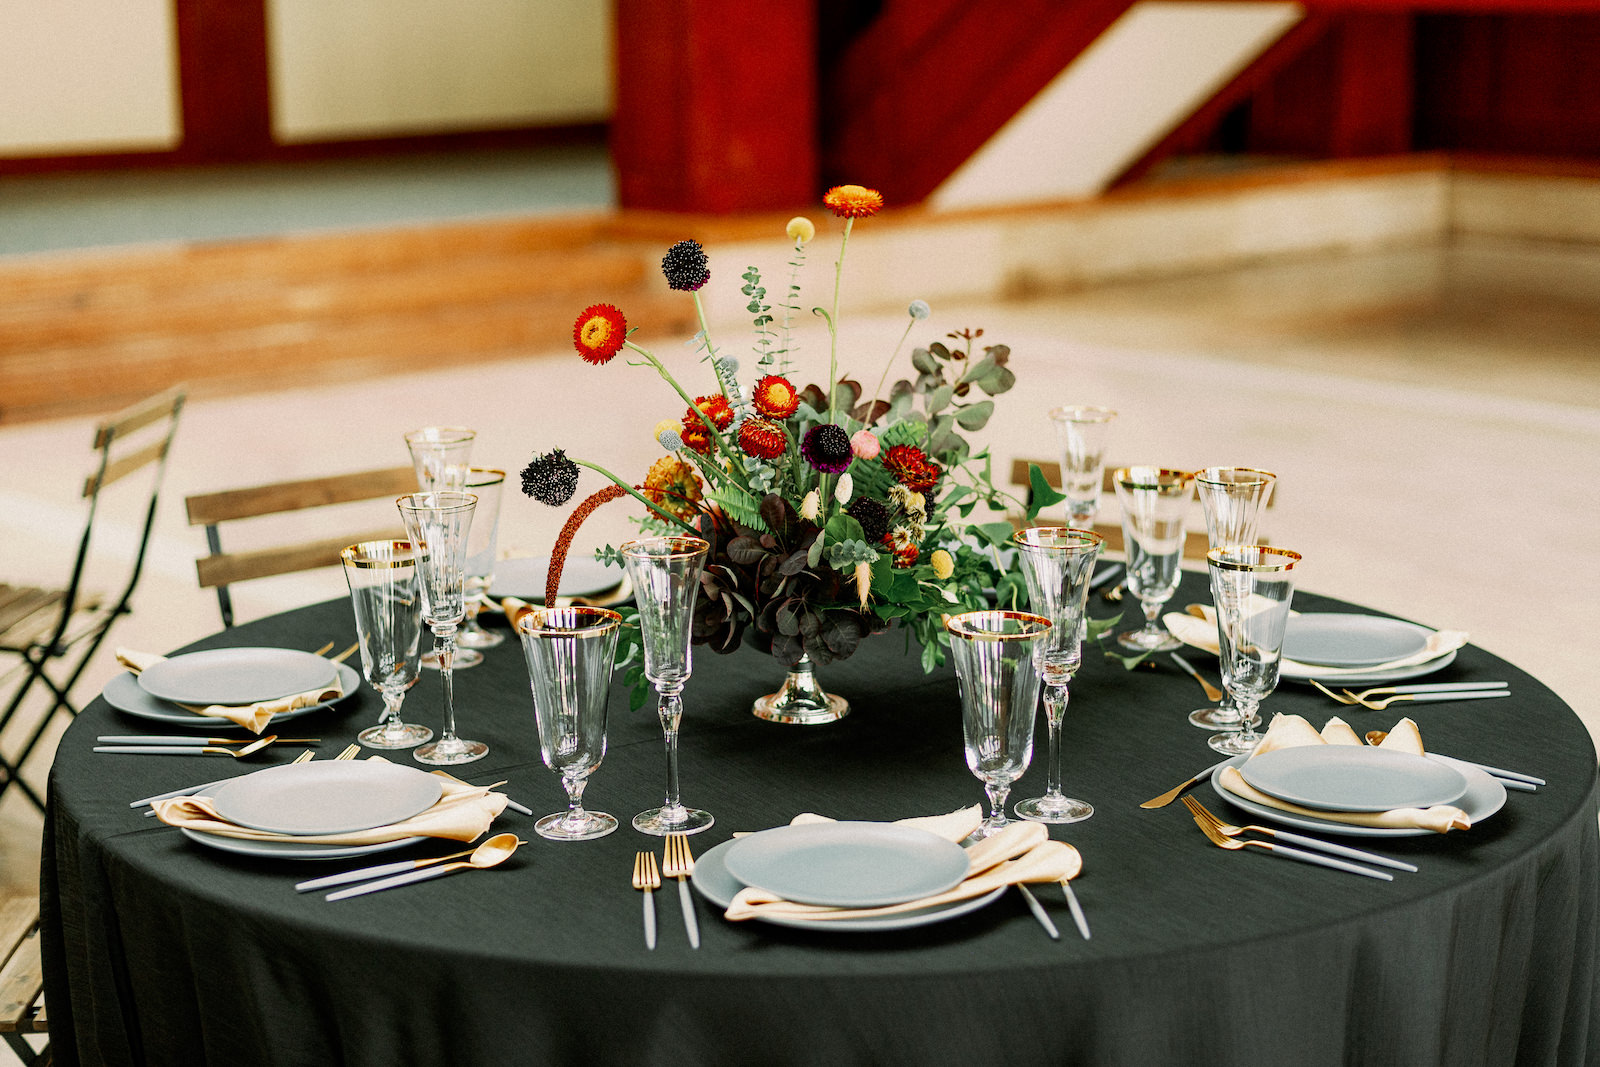 Intimate COVID Elopement Micro Wedding Reception Table with Black Linens and Grey Plates and Gold Flatware and Glassware by Kate Ryan Event Rentals   Black and Burgundy Maroon and Gold Wedding   Asymmetrical Unique Ikebana Fall Floral Arrangement by Tampa Wedding Florist Brides n Blooms   Winsor Event Studio